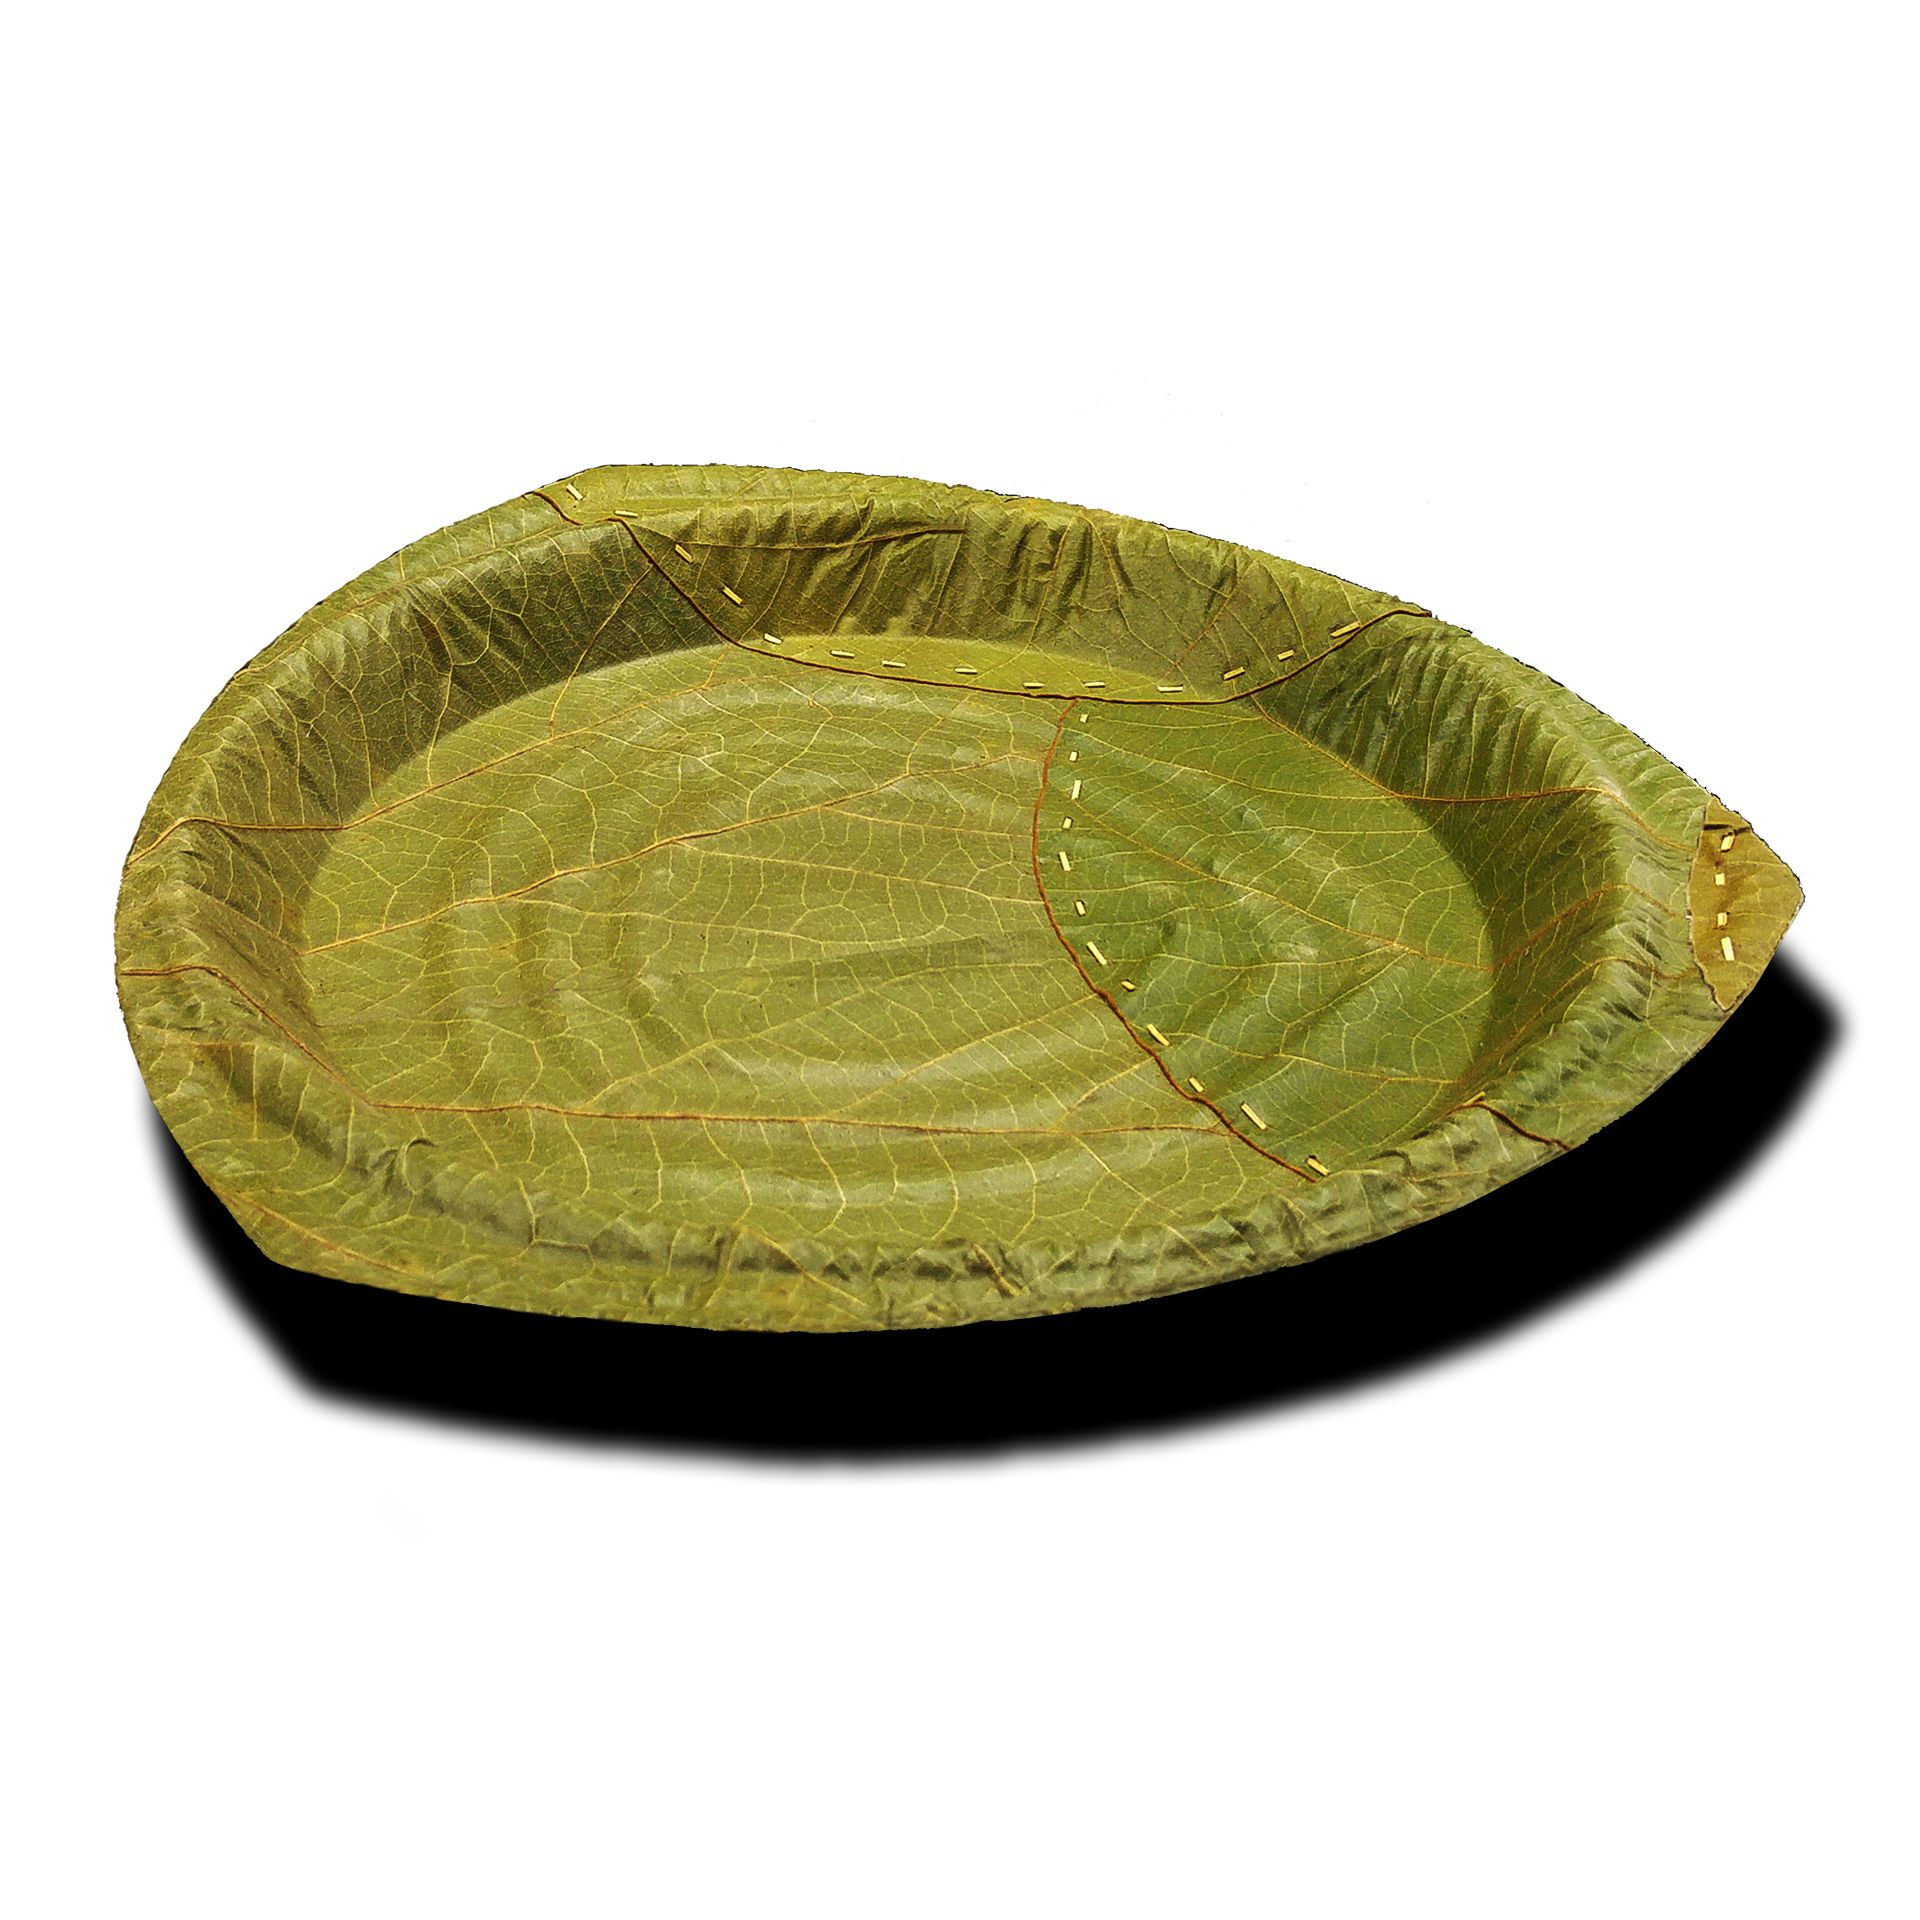 Design Teller biodegradable plates made from leaves leaf republic com repins